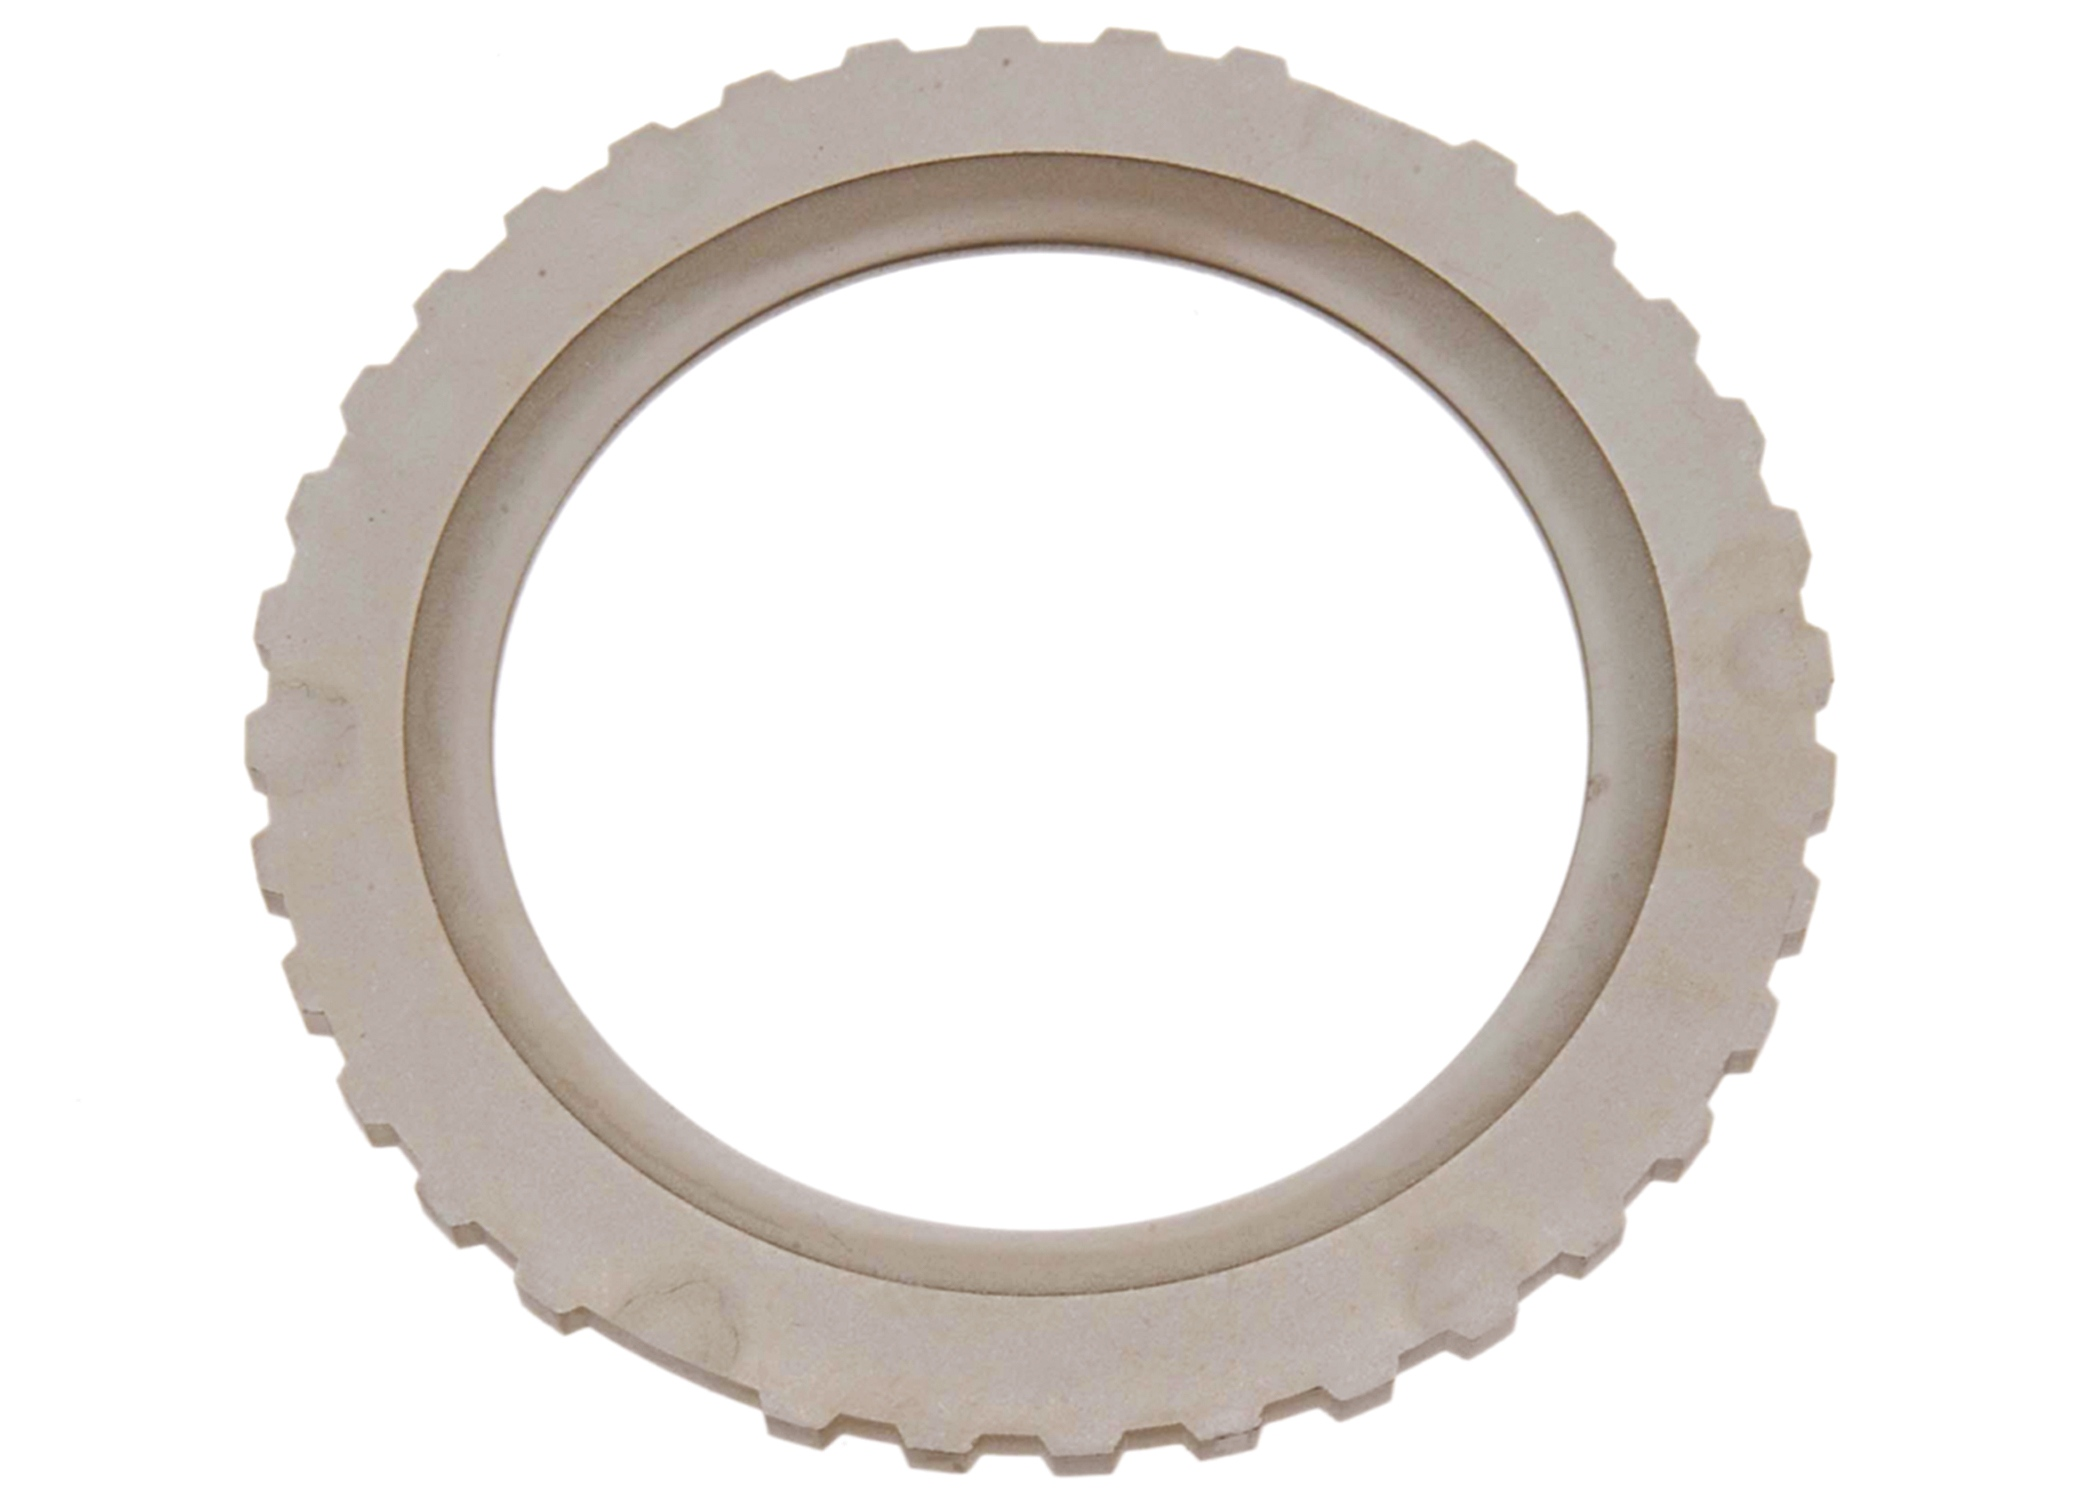 ACDELCO OE SERVICE - Auto Trans Clutch Backing Plate - DCB 24204105